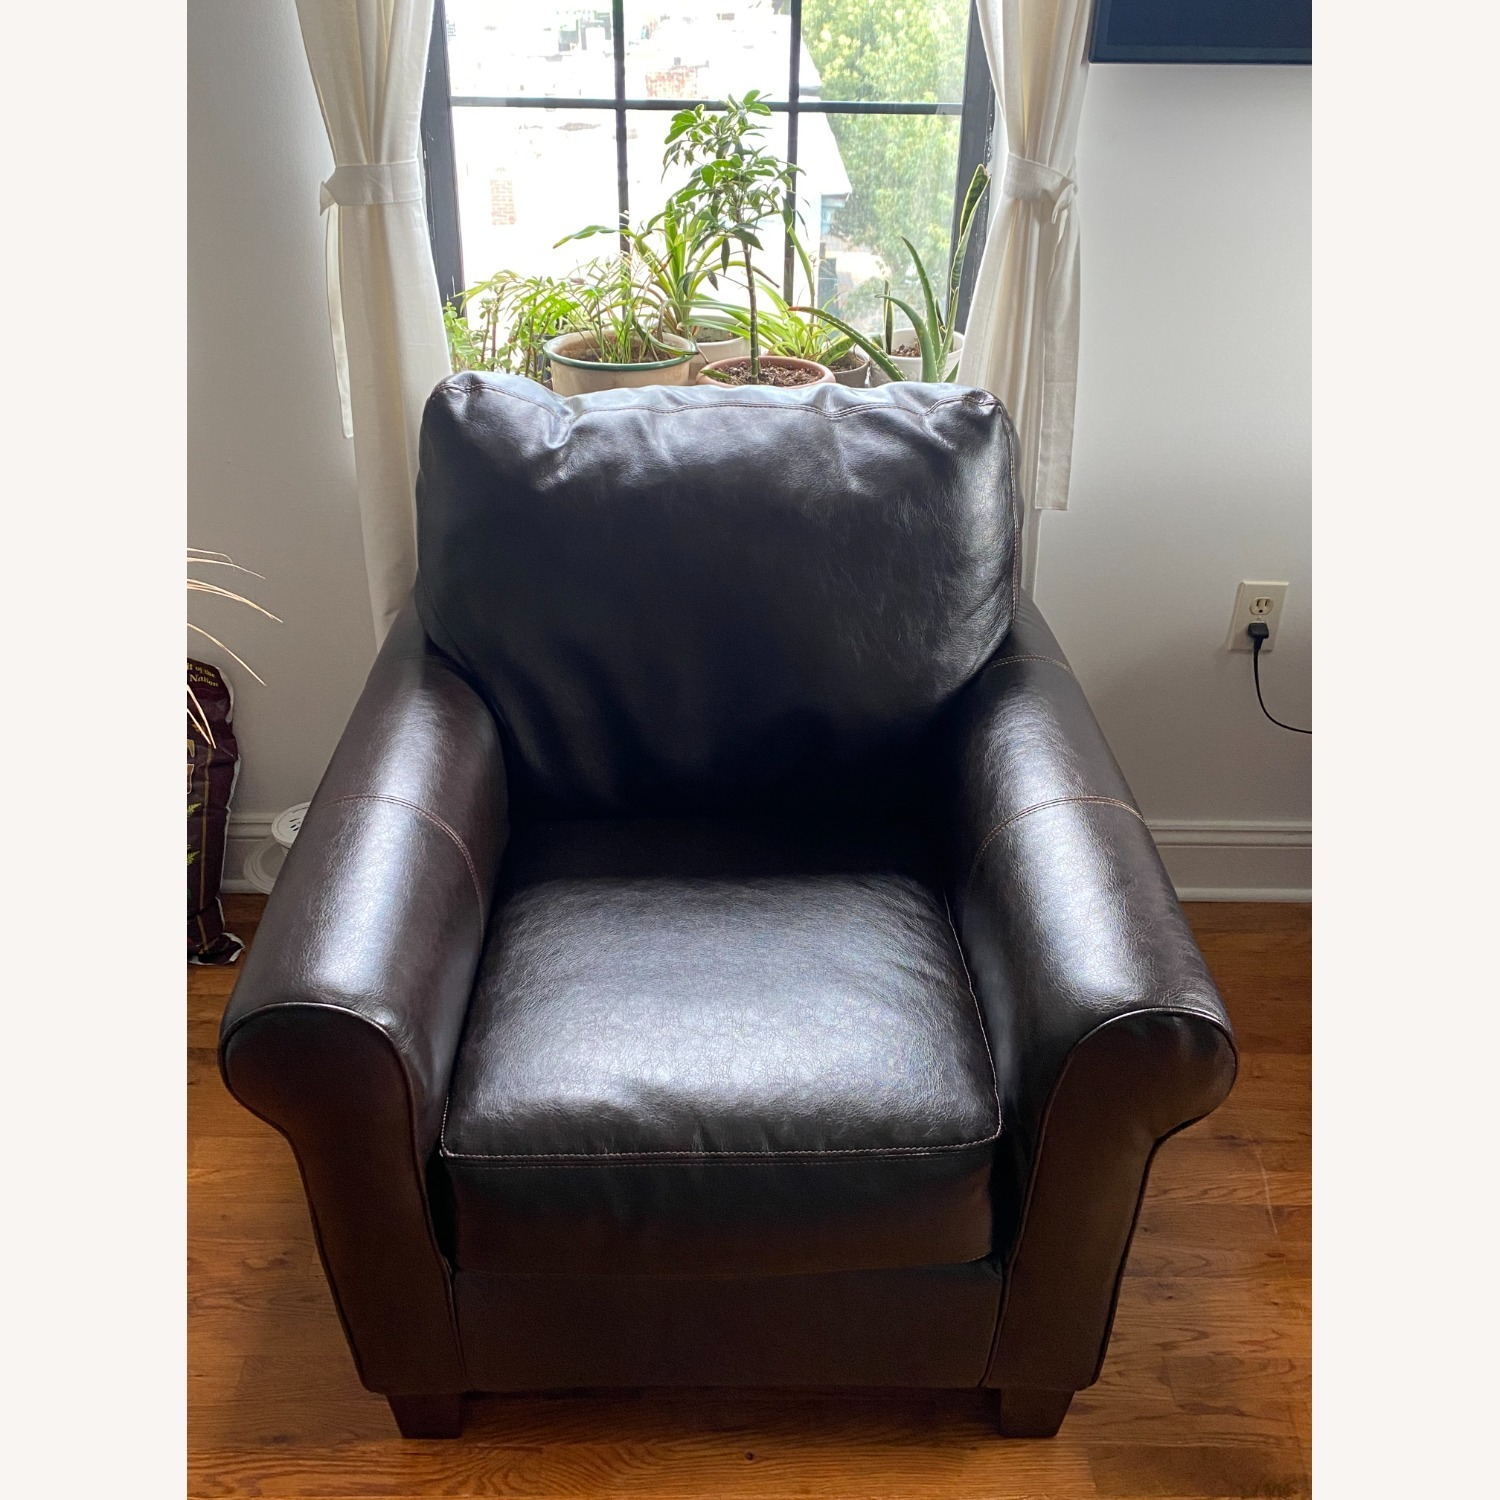 Ashley Furniture 2 Dark Brown Leather Arm Chairs - image-11